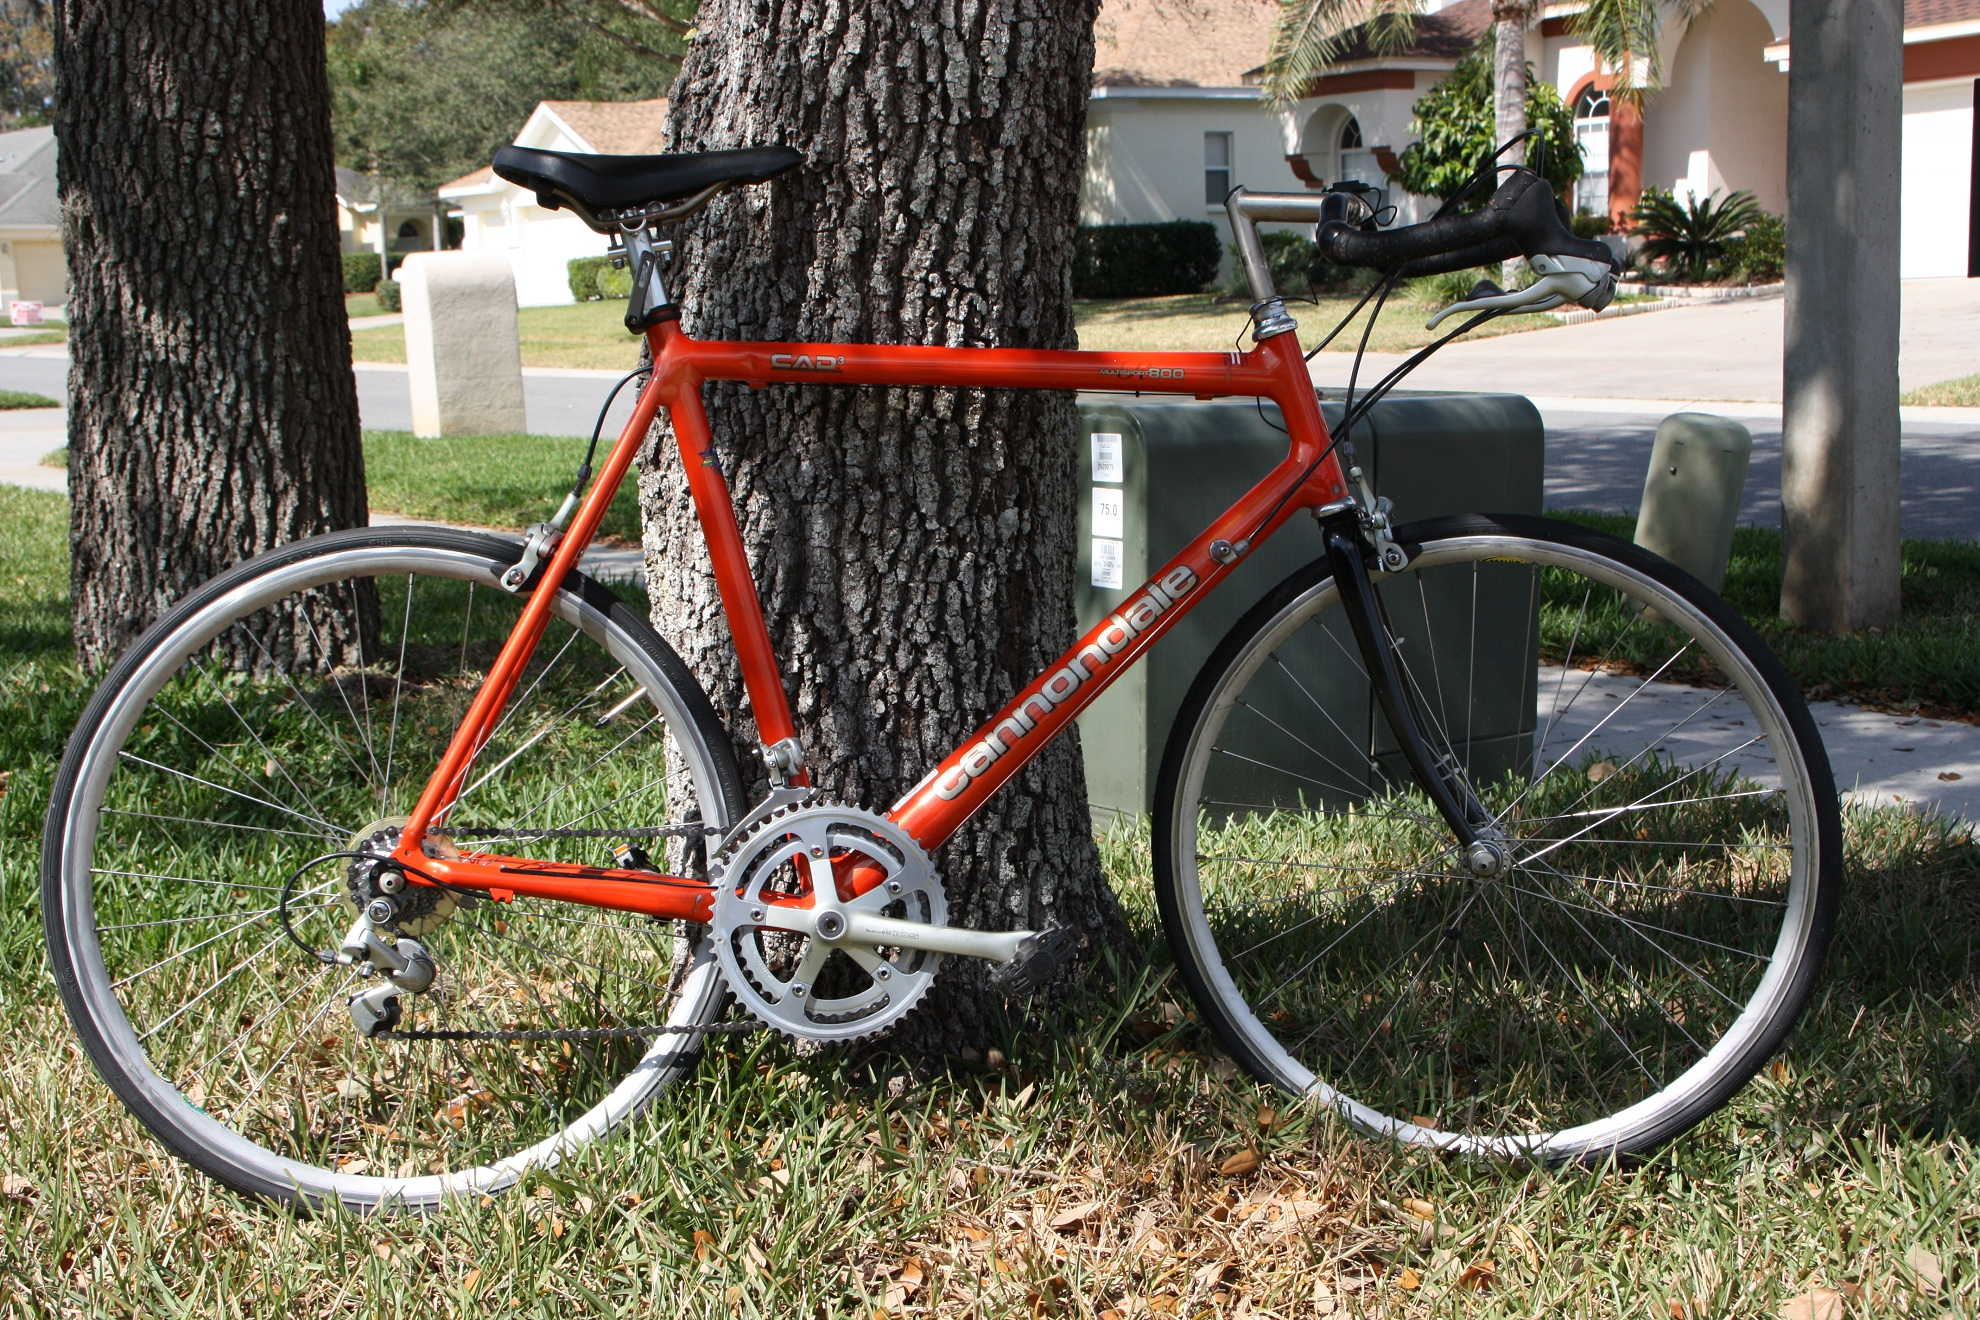 cream soda general bike that road bikes tires before other cheap with anything roughly fuckin lower days this early steel these replacement parts considering last same price unlike older want page less hours thing said someone least edit aluminum something very shitty easy here selection time pick city better